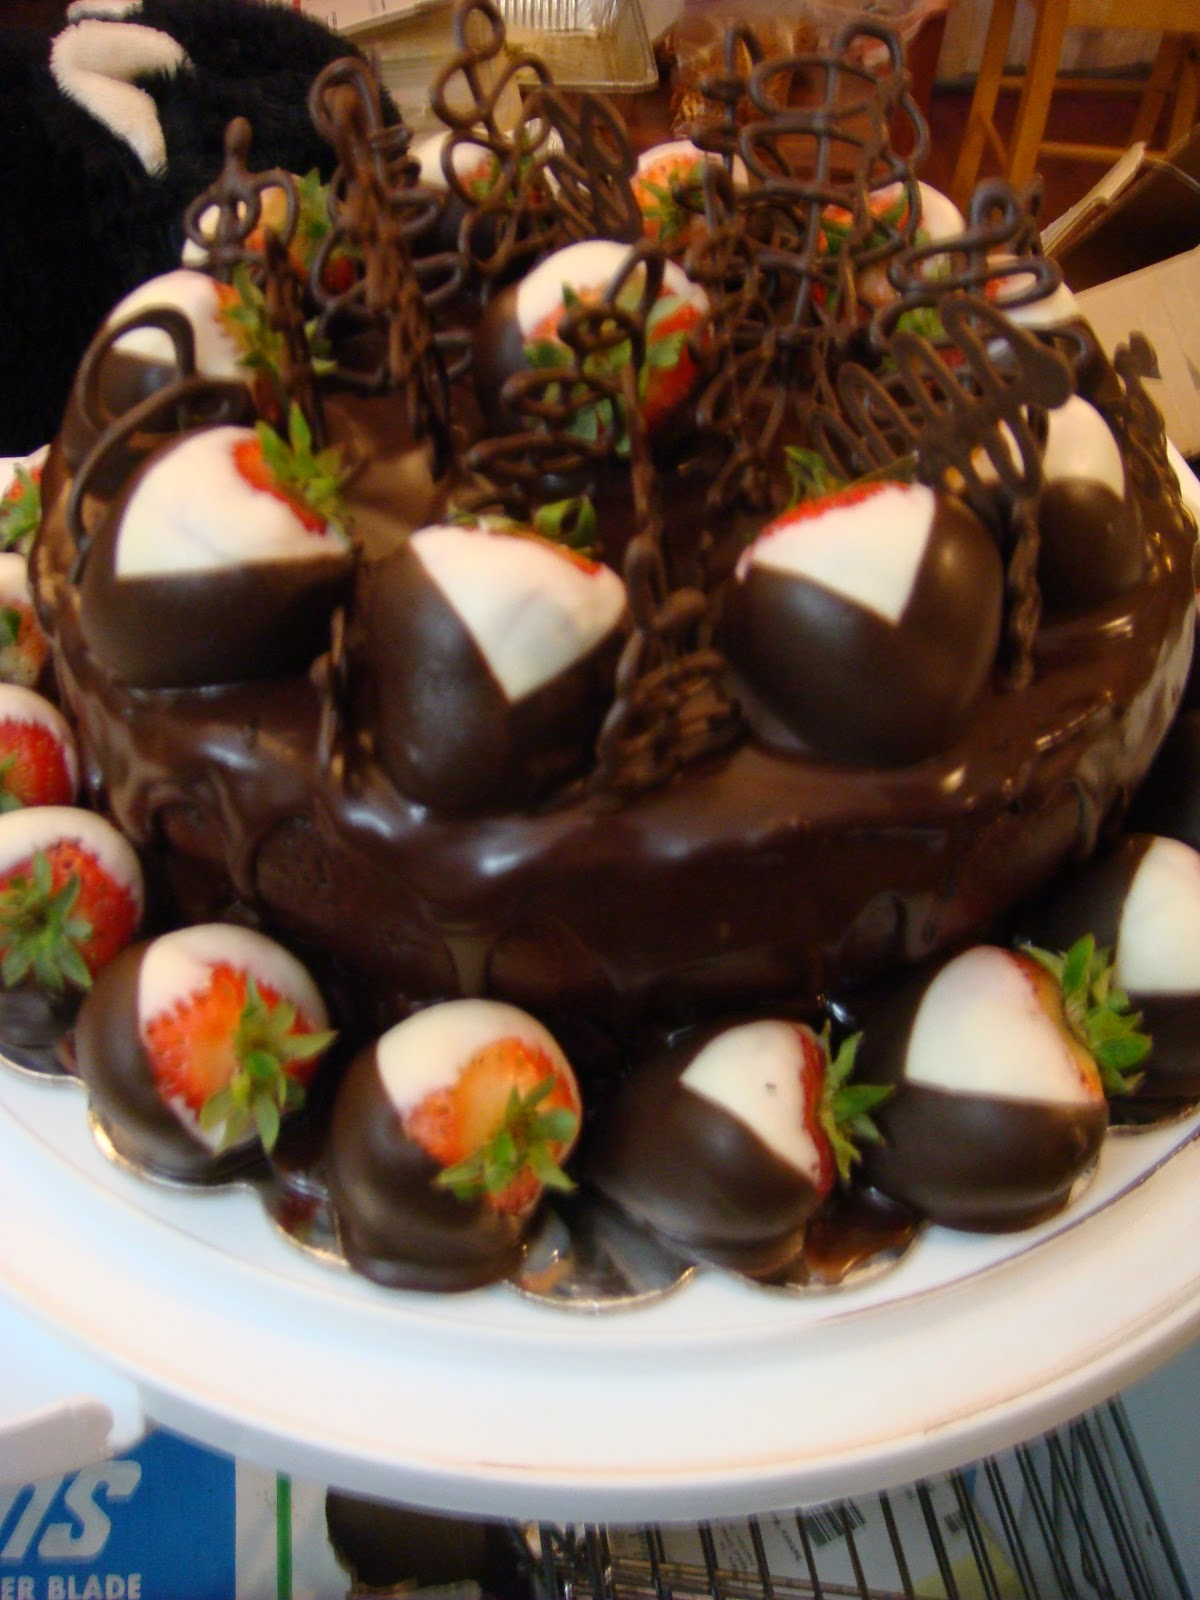 ... Cupcakes: Chocolate Ganache Cake with Chocolate Covered Strawberries